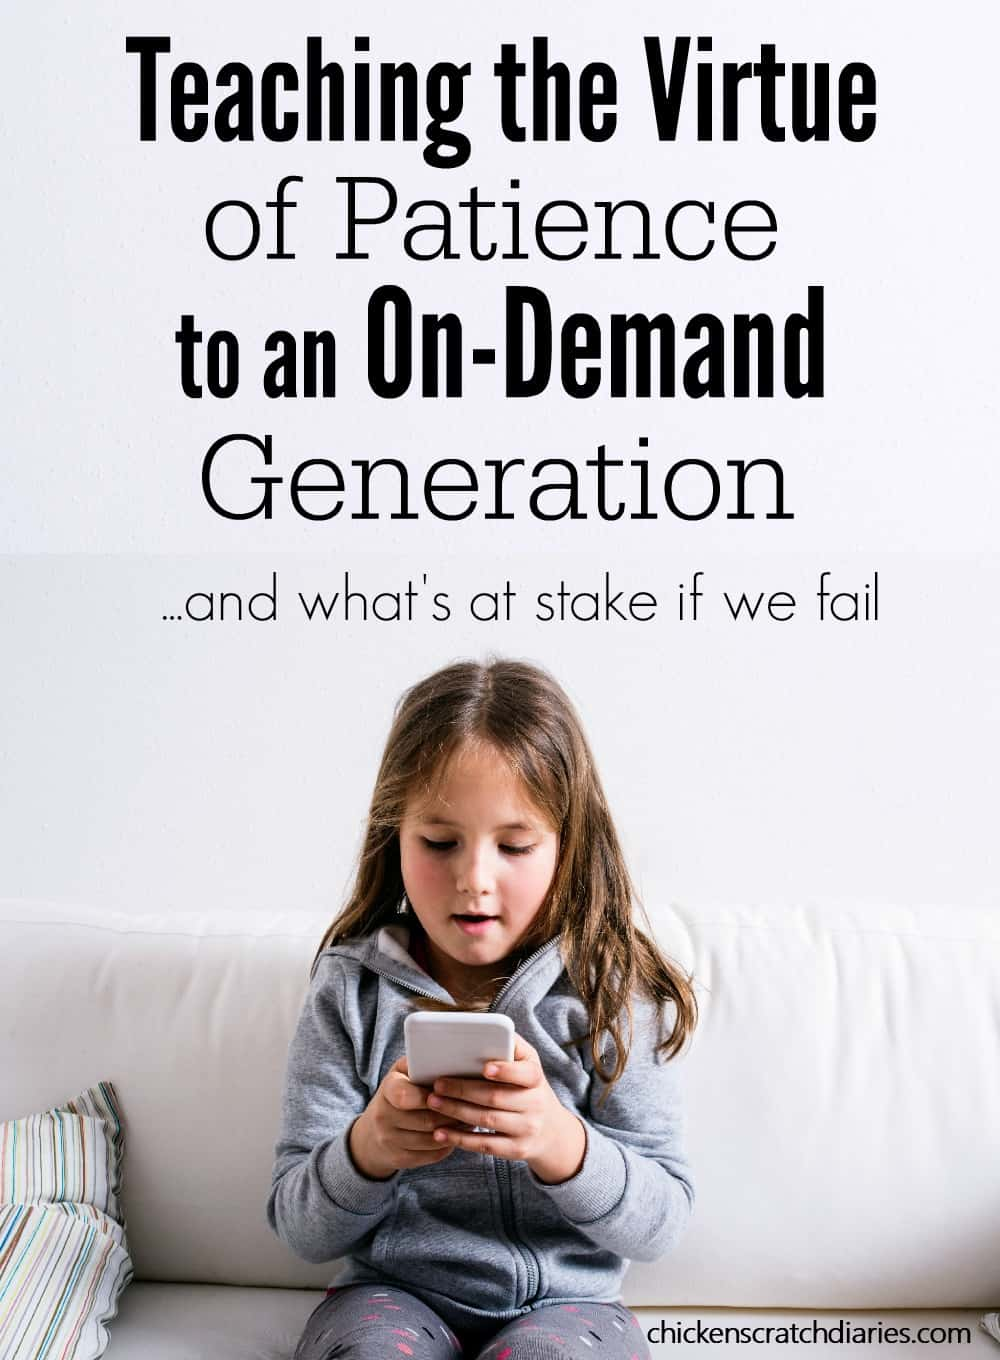 Technology and Kids: It's a hot topic today, and for good reason. Have you noticed that we don't have to WAIT for anything anymore? Interesting perspective on how this could impact kids long after childhood. #Technology #Patience #Parenting #IntentionalParenting